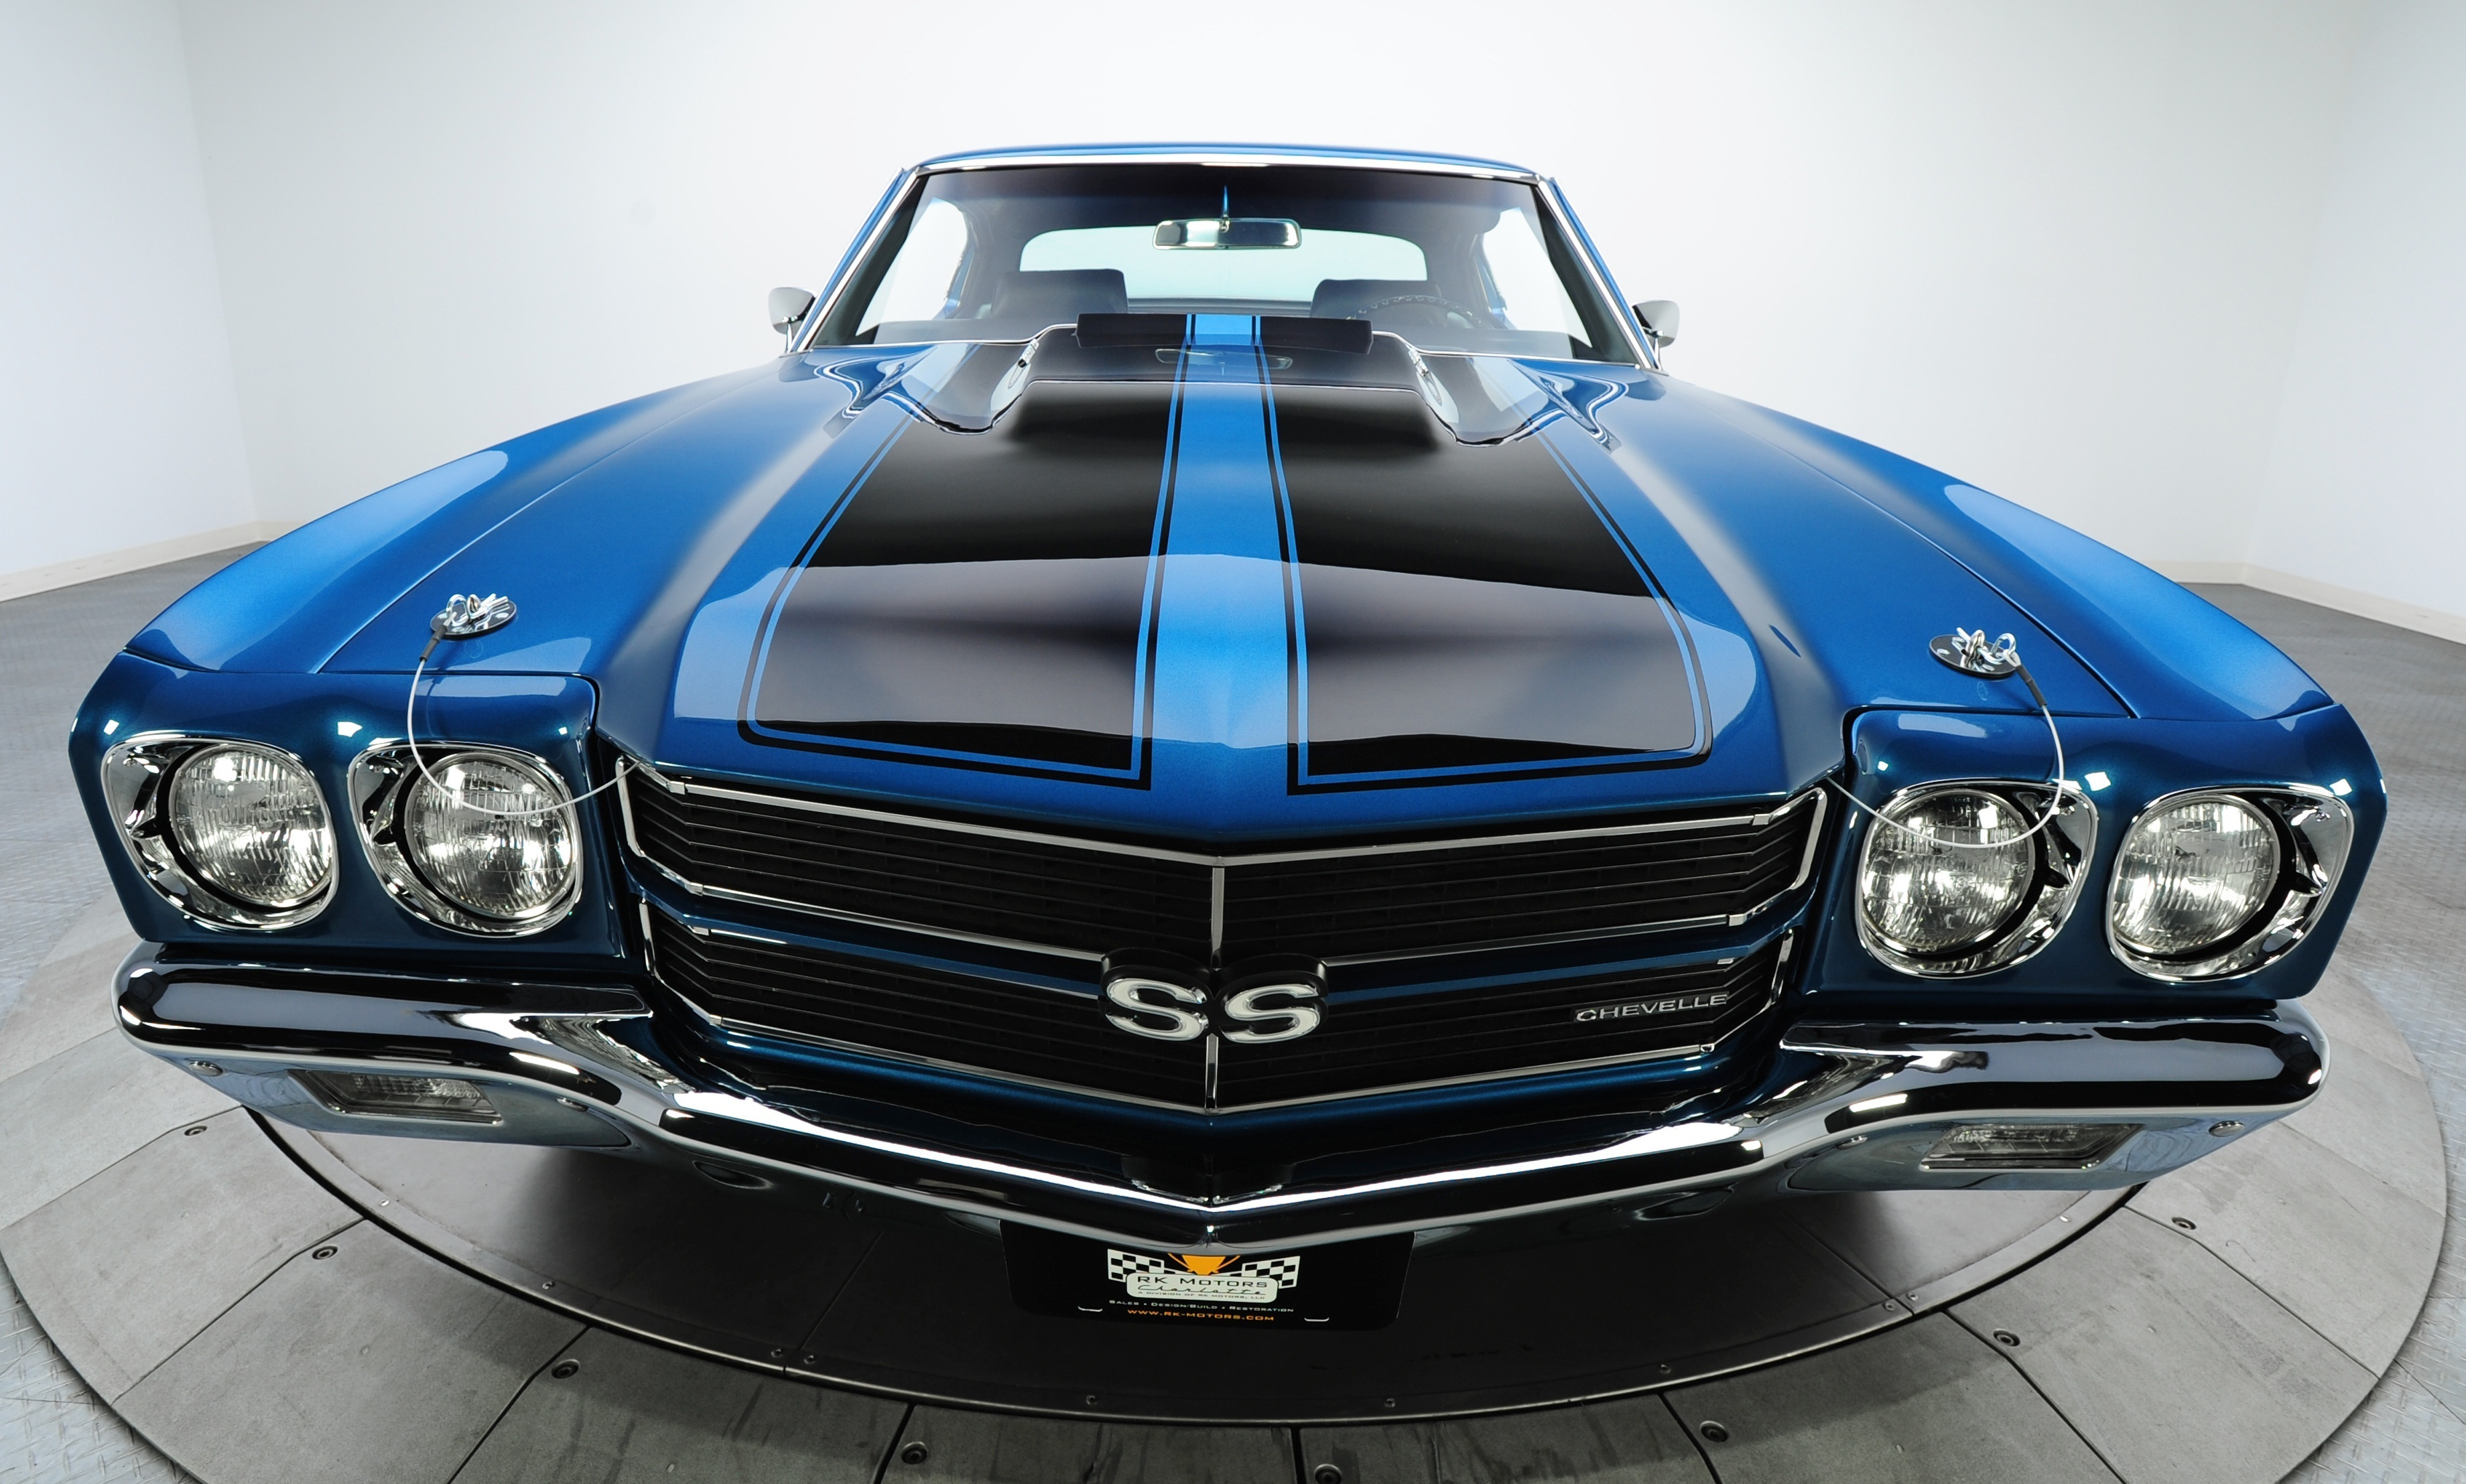 21 Chevrolet Chevelle SS HD Wallpapers | Backgrounds ...